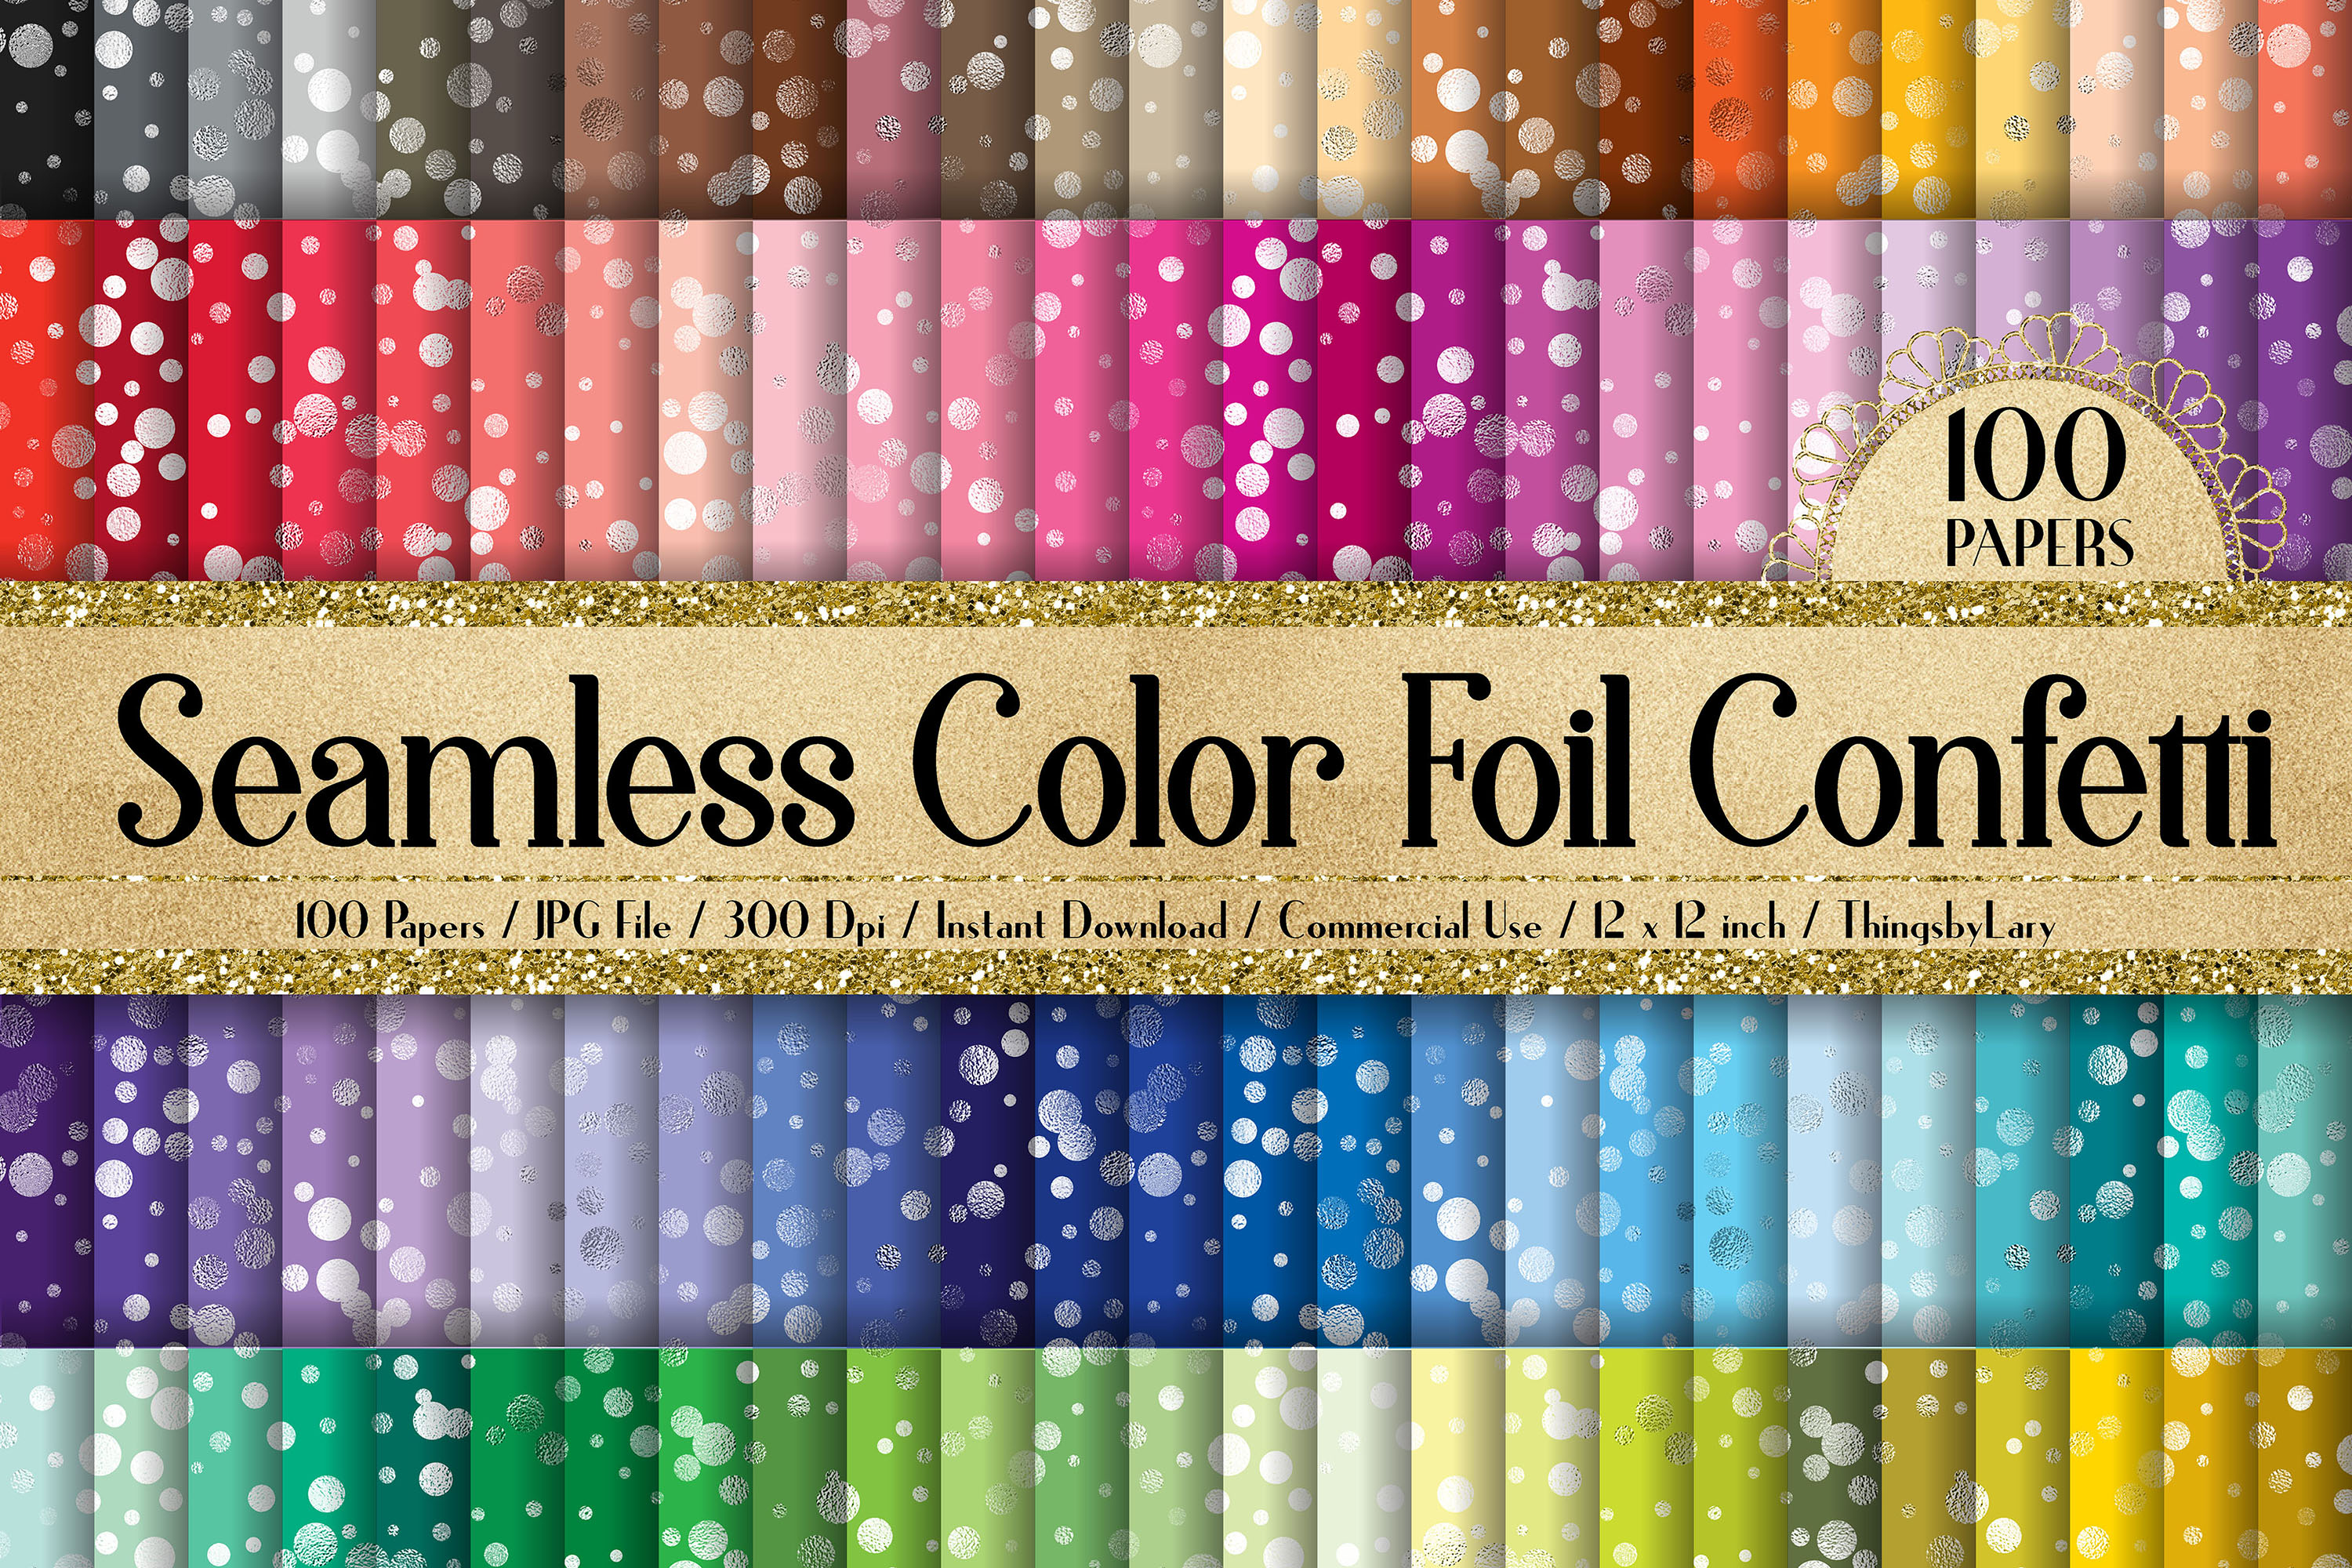 100 Seamless Color Metallic Foil Confetti Digital Papers example image 1